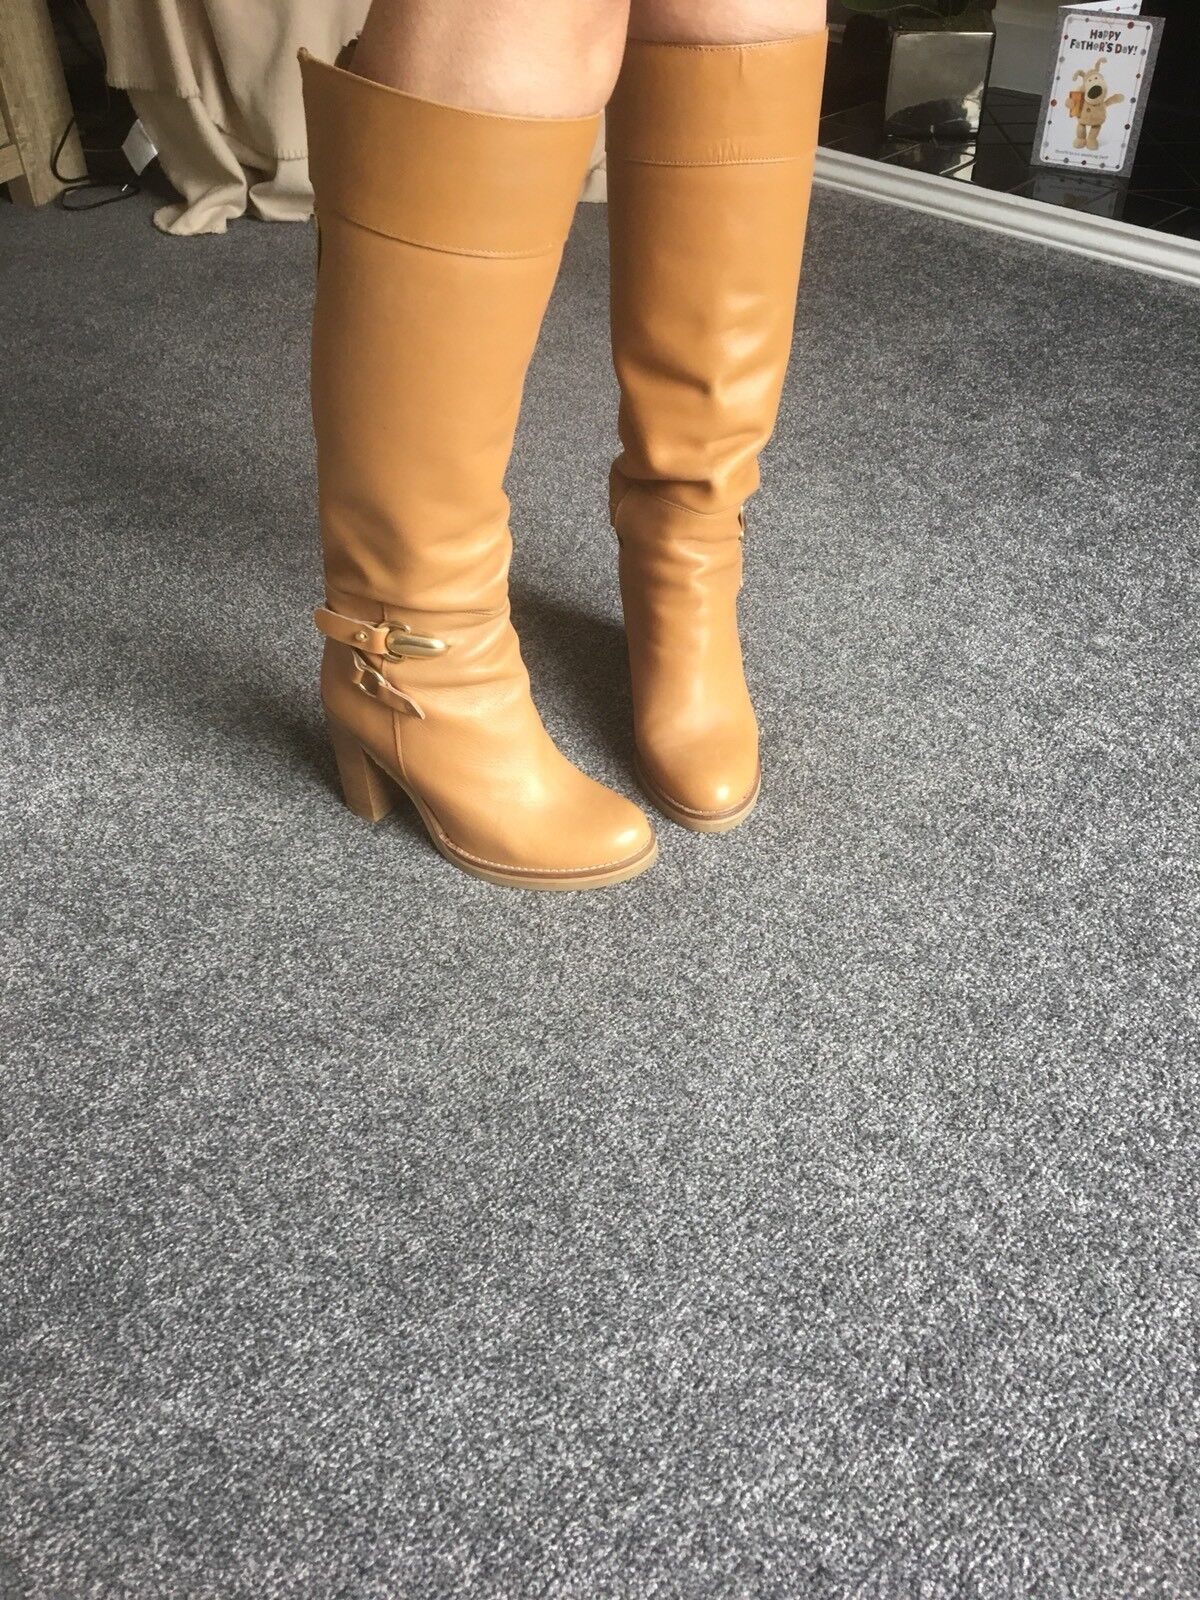 Ladies Boots From next, Brown Size 6